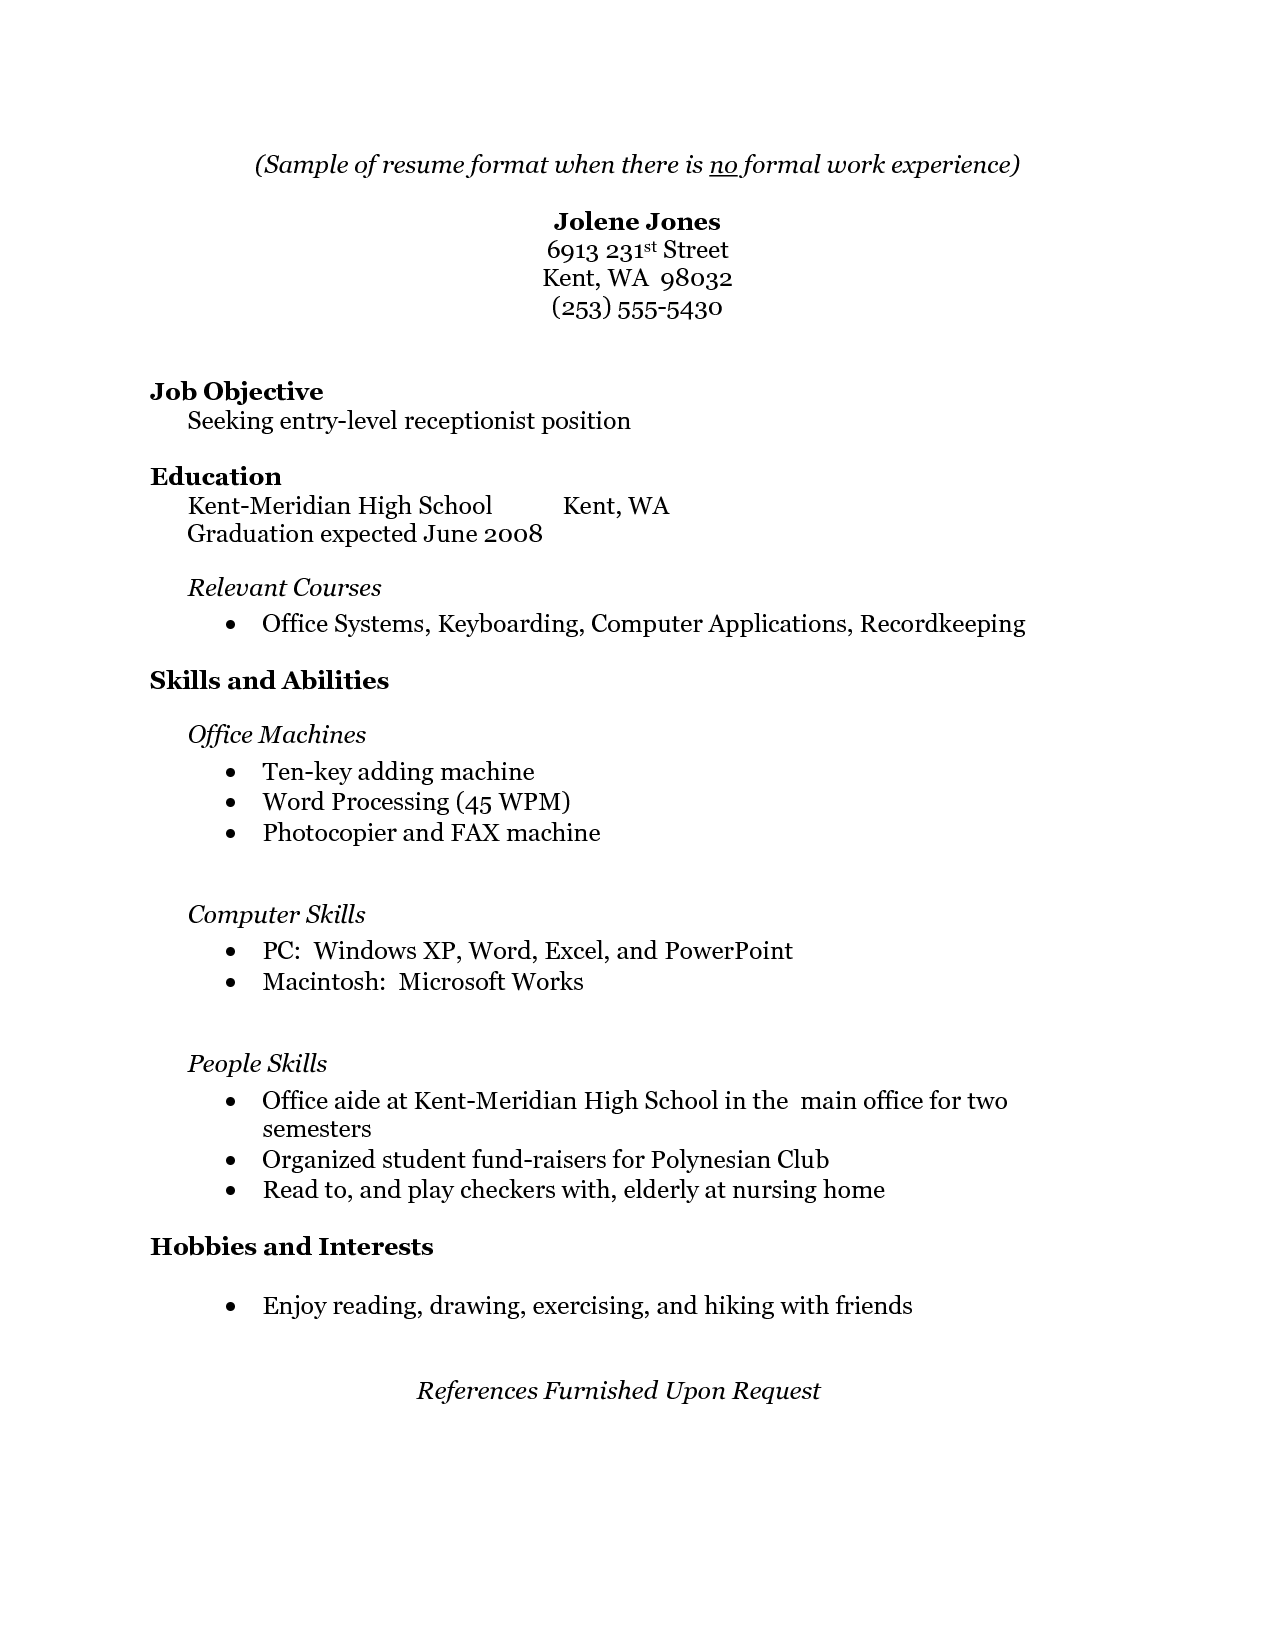 How To Write A Resume With No Work Experience Resume Examples No Job Experience  Resume Examples  Pinterest .